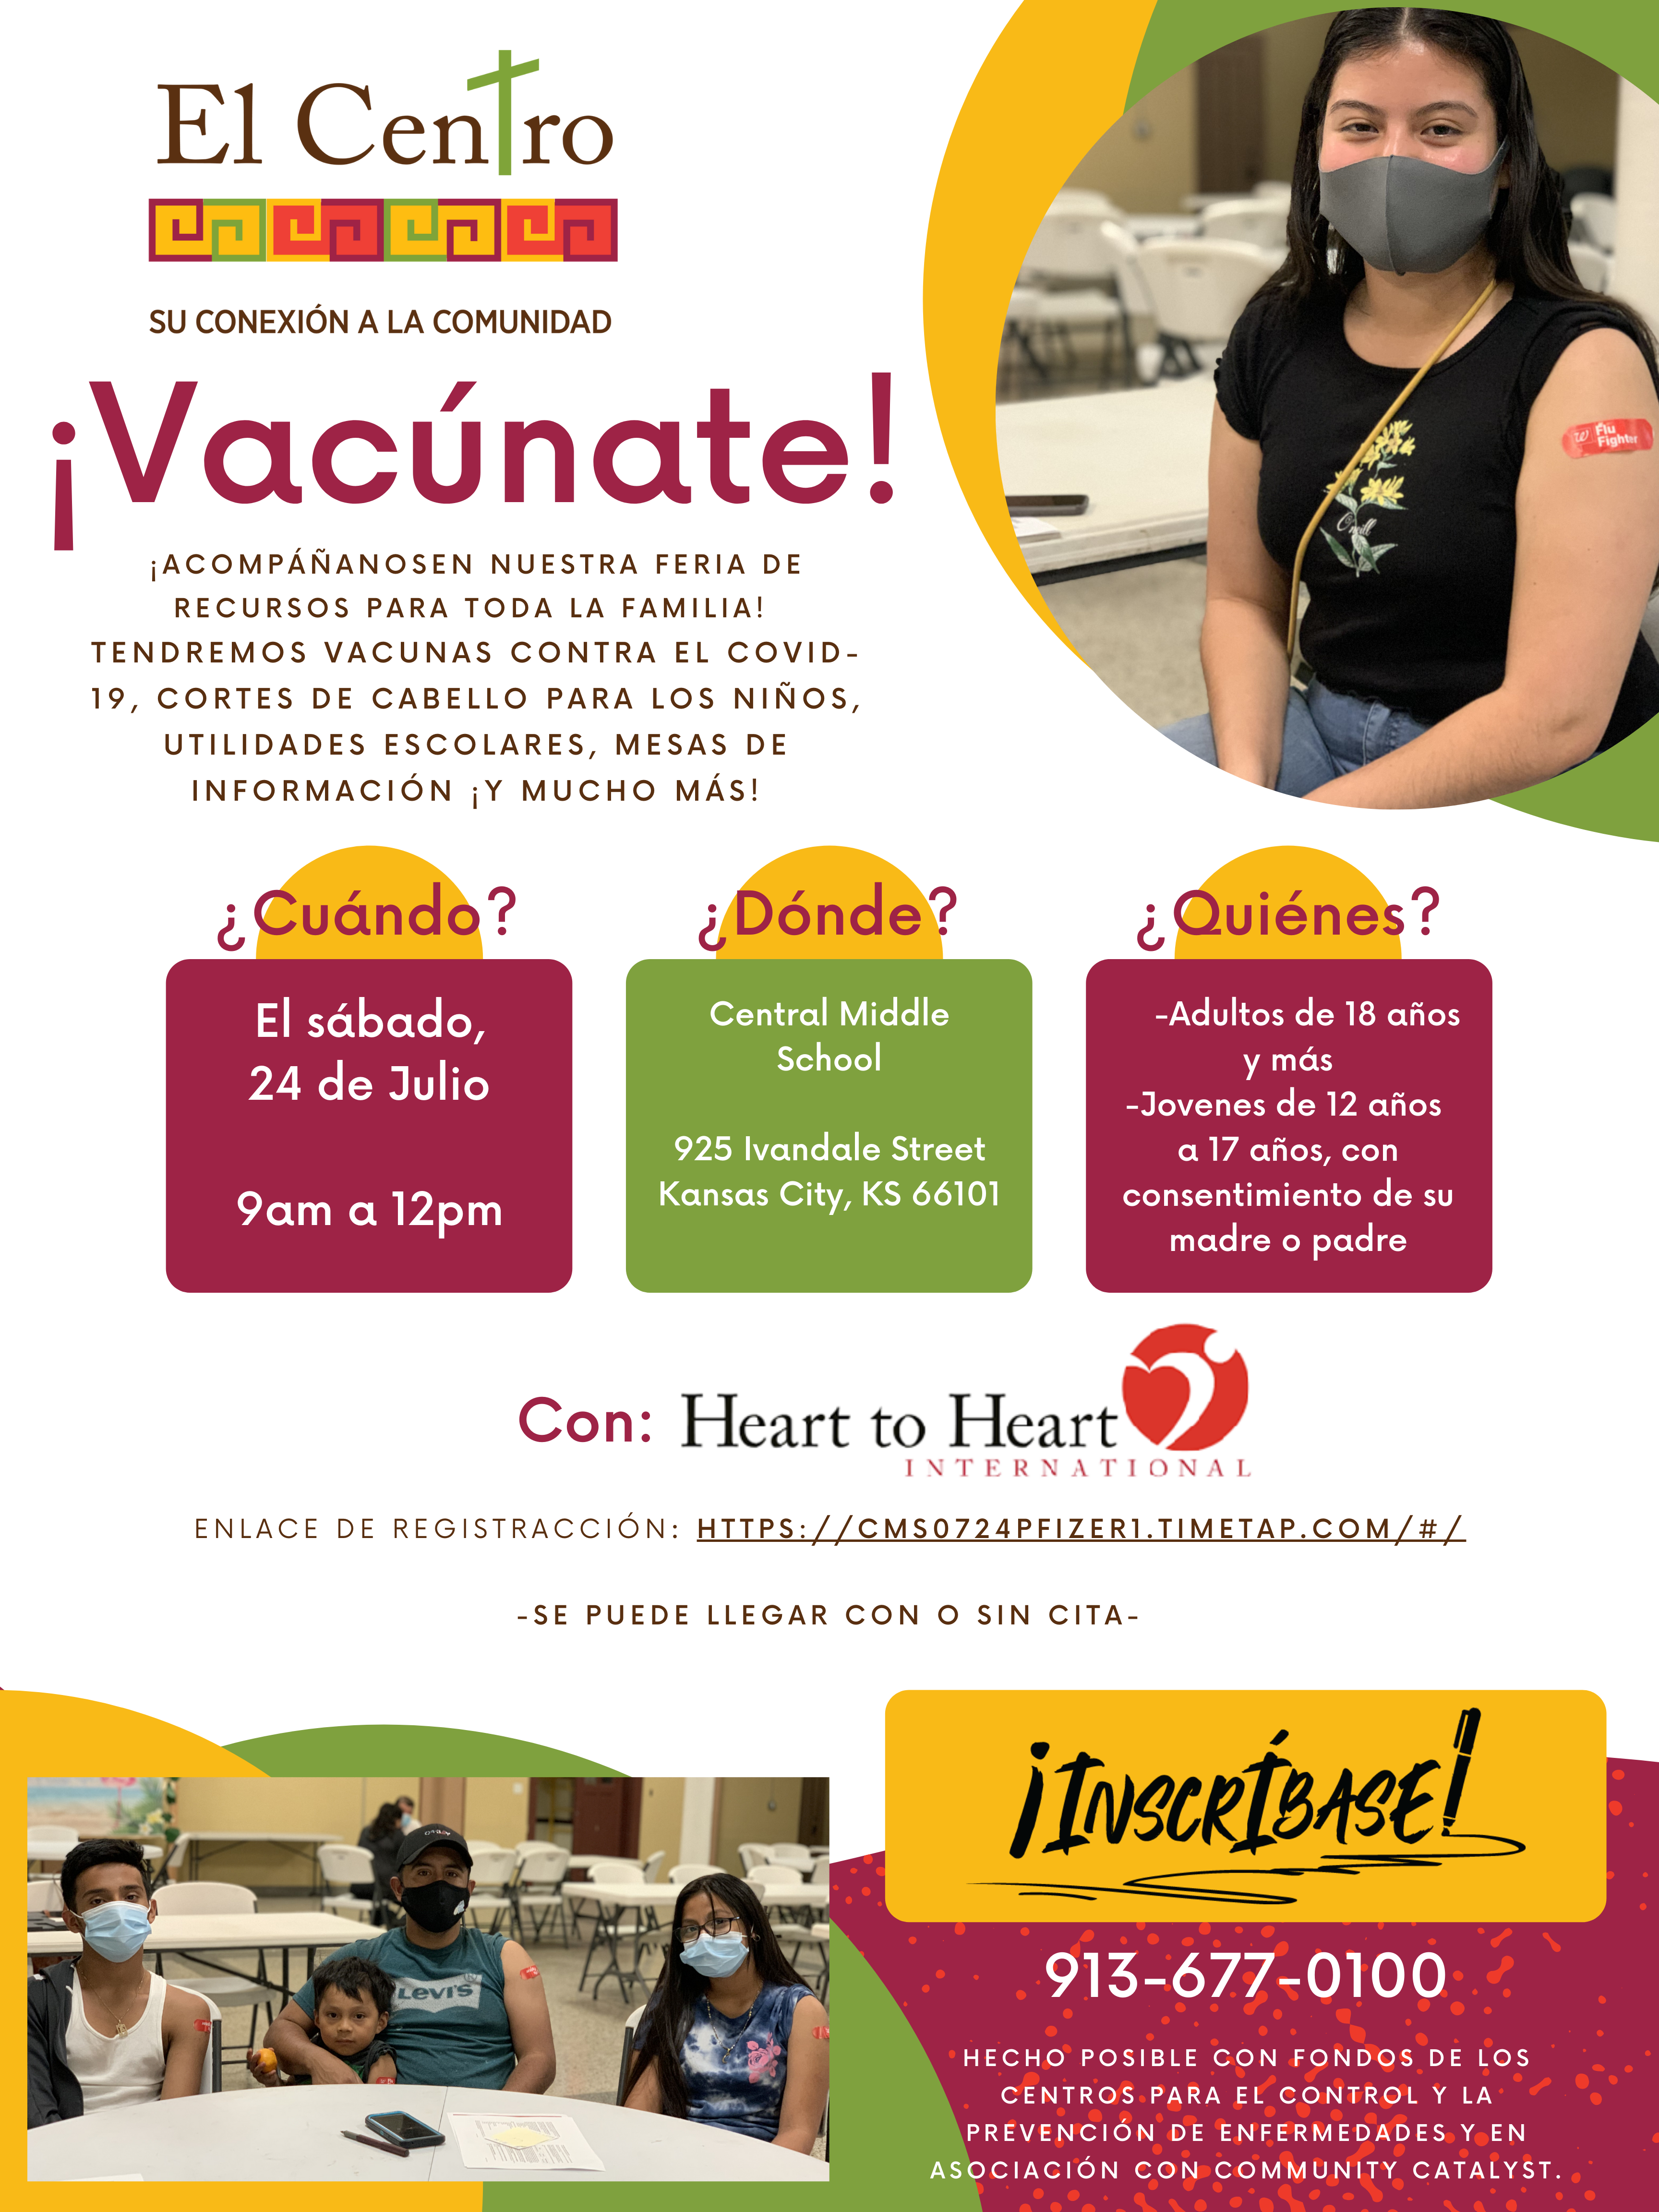 vaccination info in Spanish